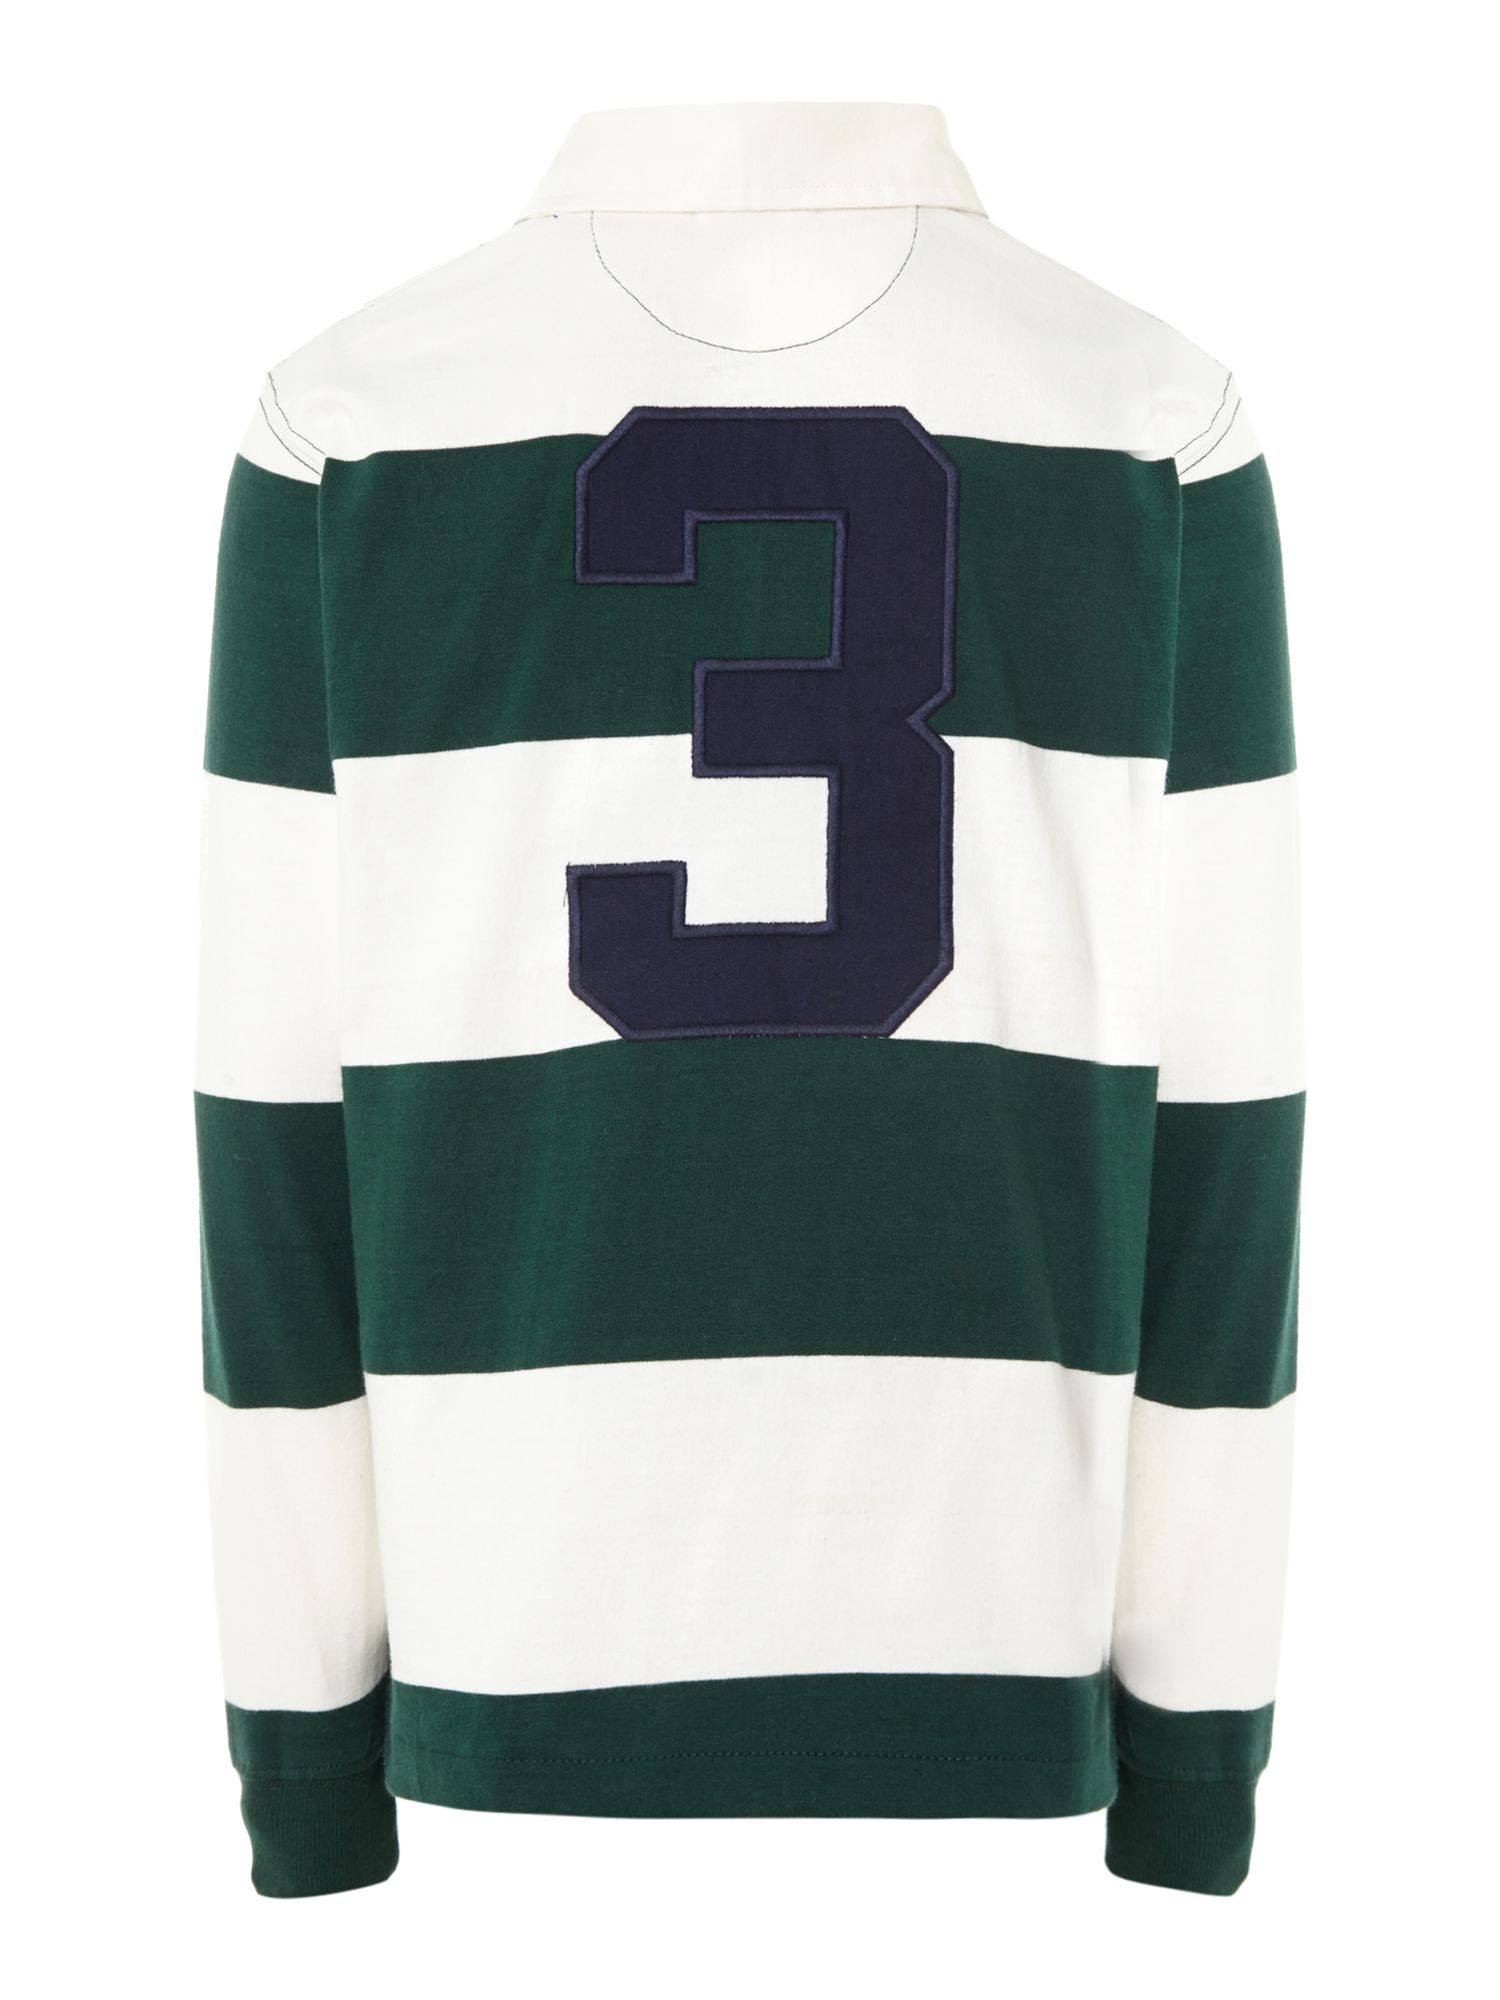 Boys stripe rugby shirt with number 3 on the back